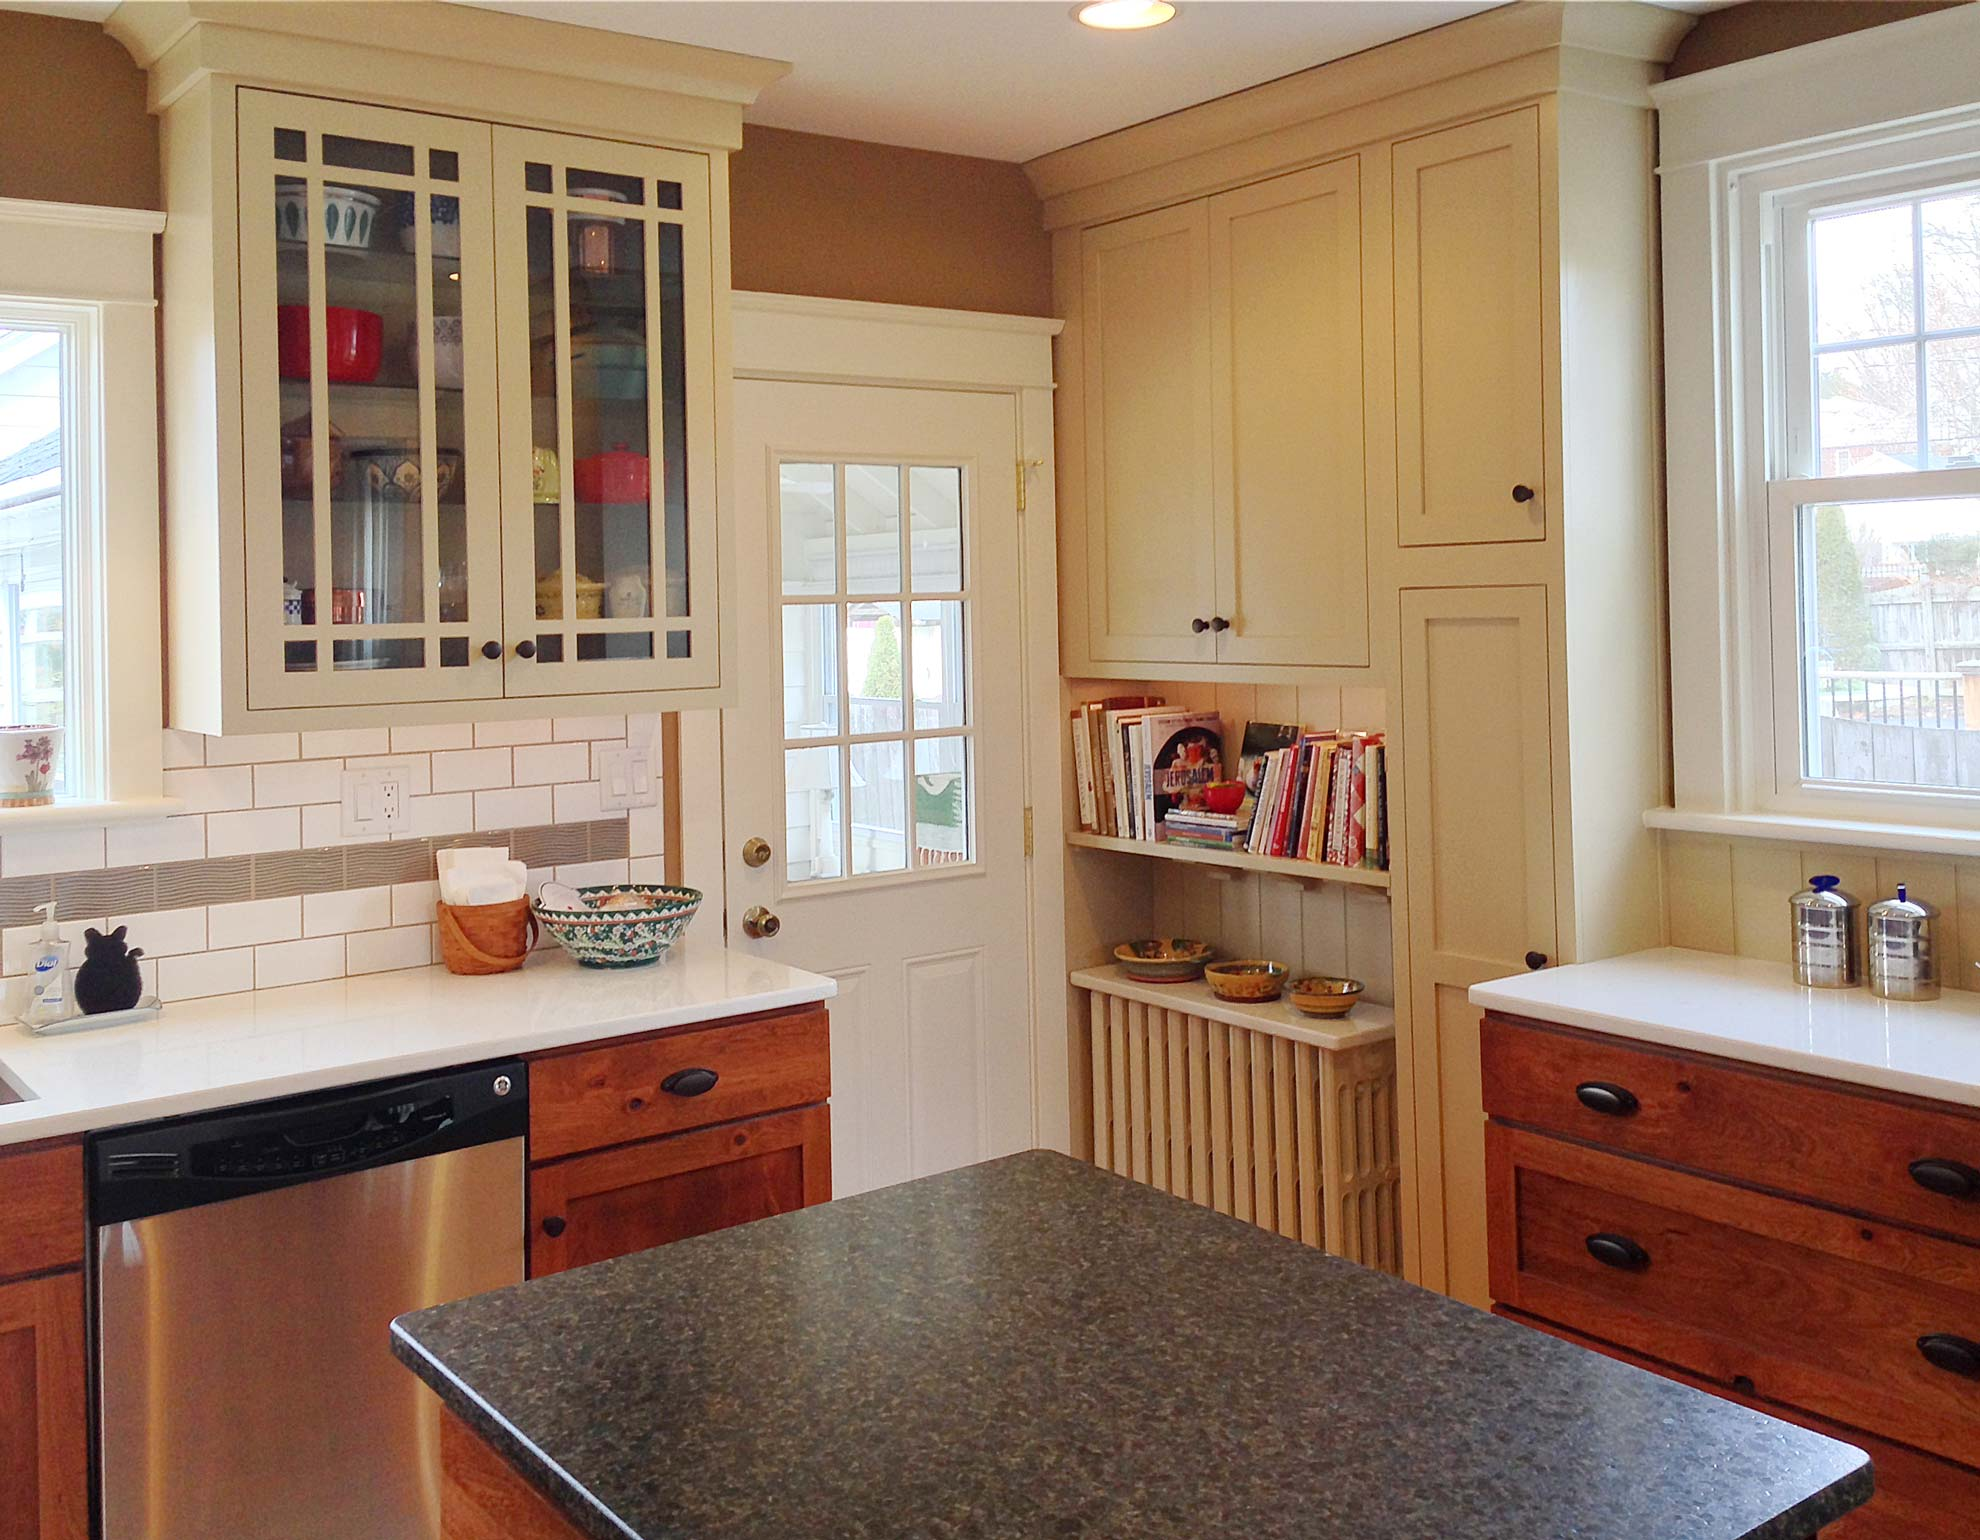 camp hill s colonial colonial kitchen design Designing a Space for Living